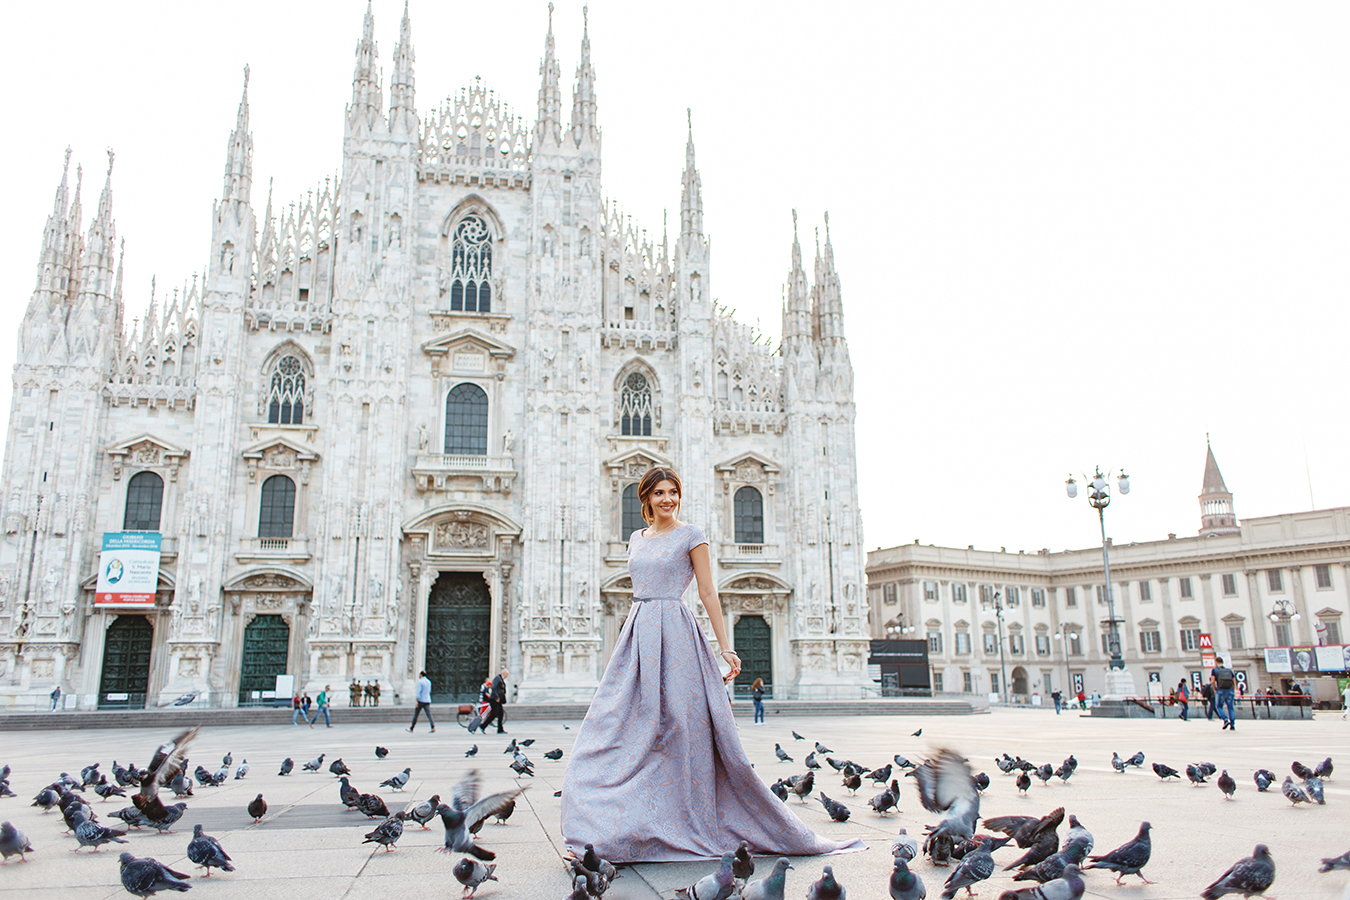 larisa costea, larisa costea blog, the mysterious girl, the mysterious girl blog, fashion blog, blogger, fashion, fashionista, it girl, travel blog, travel, traveler, ootd, lotd, outfit inspiration,look of the day,outfit of the day,what to wear,duomo, duomo di milano, milano,milan,milan fashion week,mfw,mfw ss 17,spring summer, oana nutu, oana nutu dress,rochie de seara,rochie de bal, prom dress,wedding guest, gown, princess dress, train,long train, pantone, rose quartz,serenity blue, pandora,pandora jewelry, fall collection,unique as we are, pandora romania, the look of you